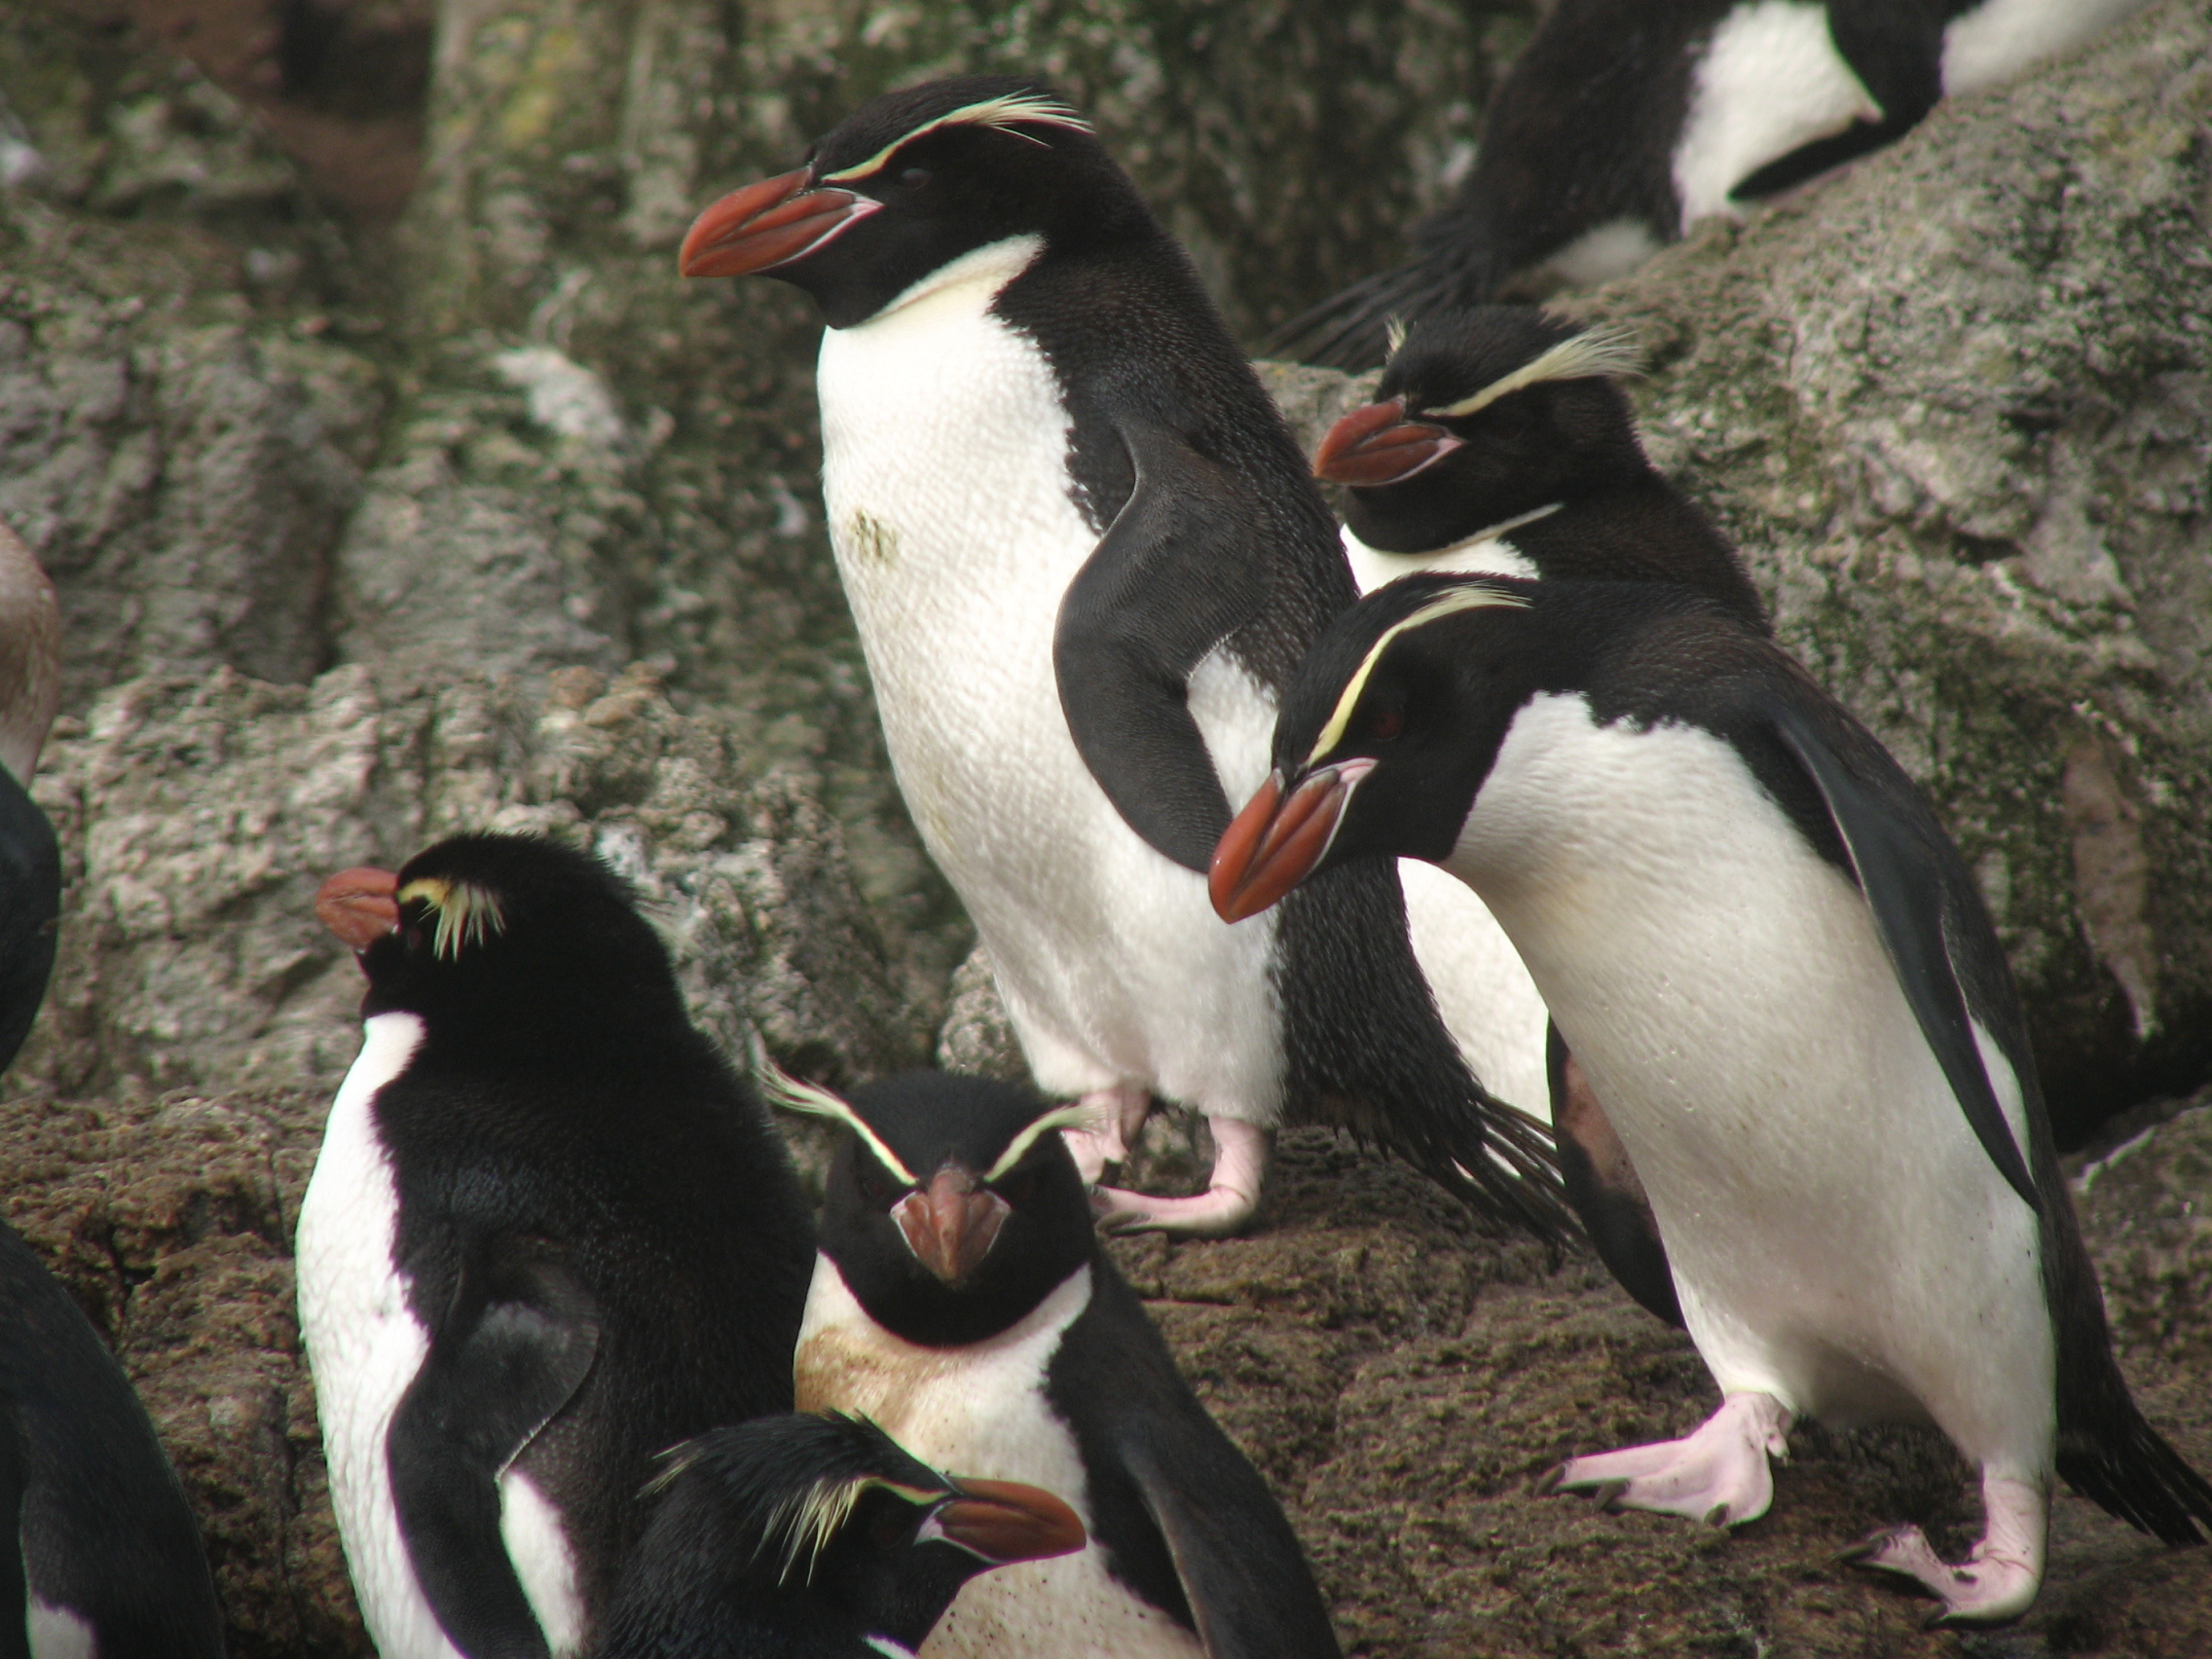 Snares penguin - Wikipedia